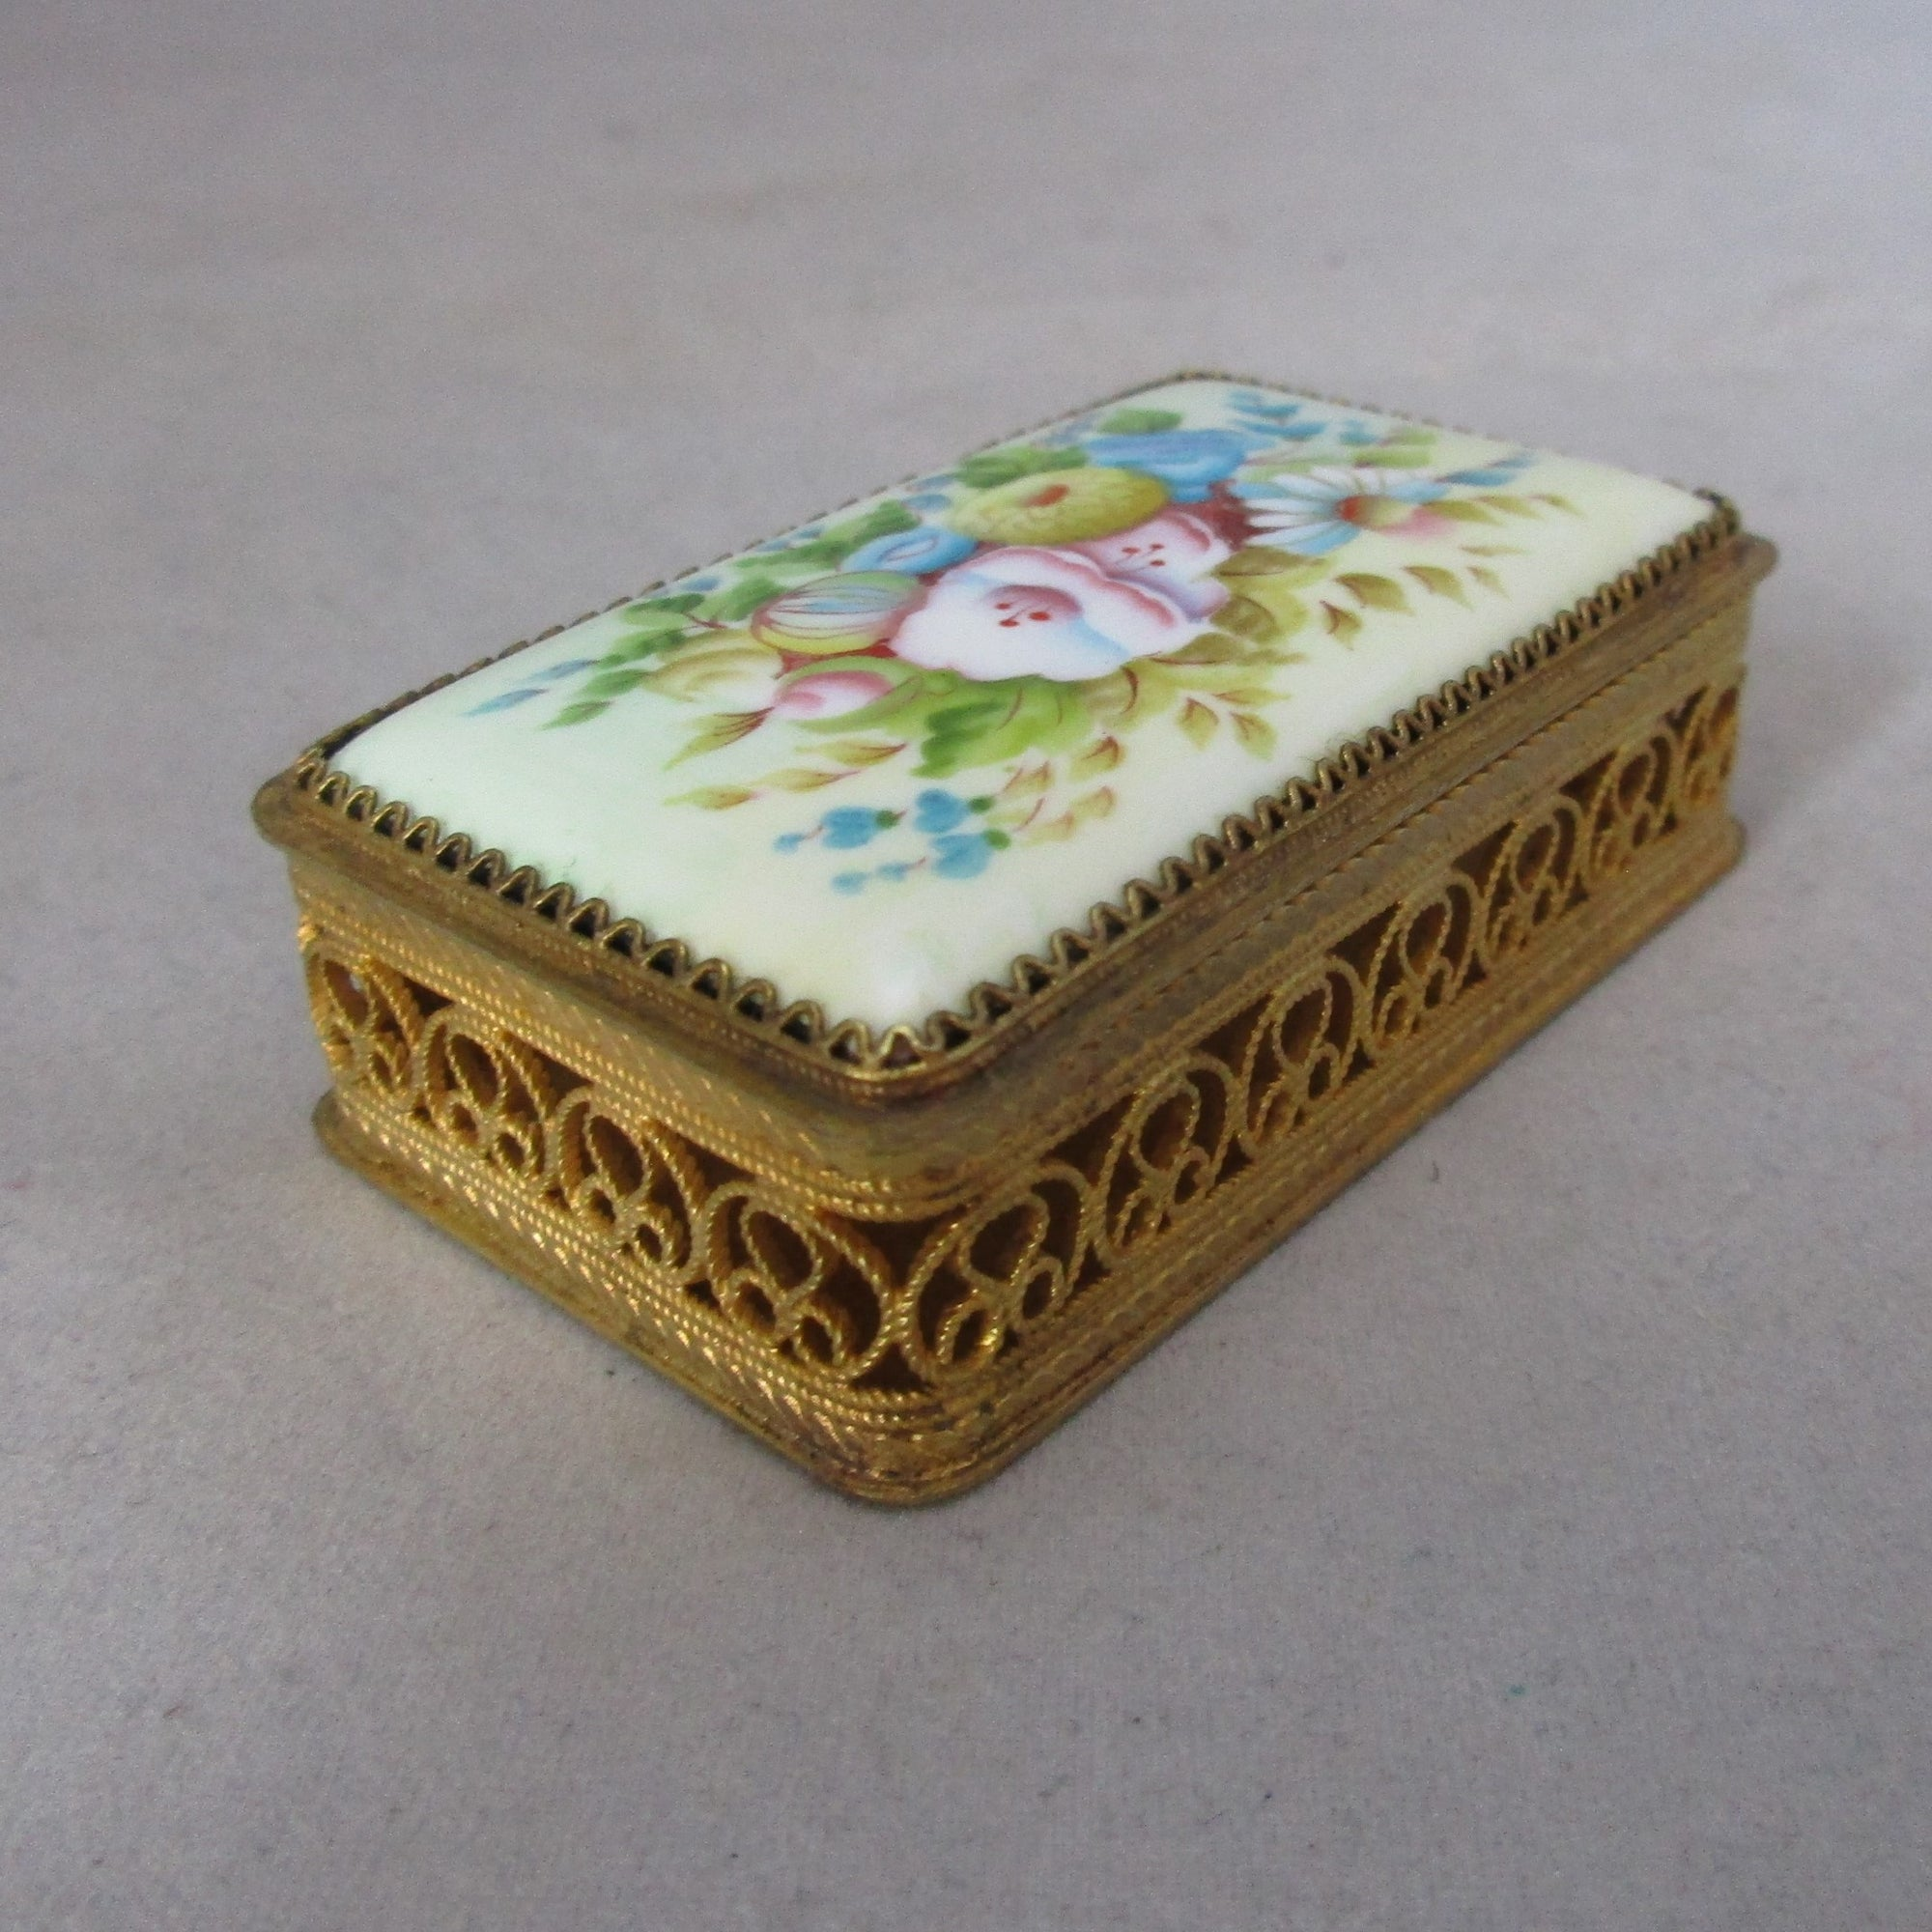 Gilt Filigree Trinket Box with Porcelain Lid Vintage c1950s.